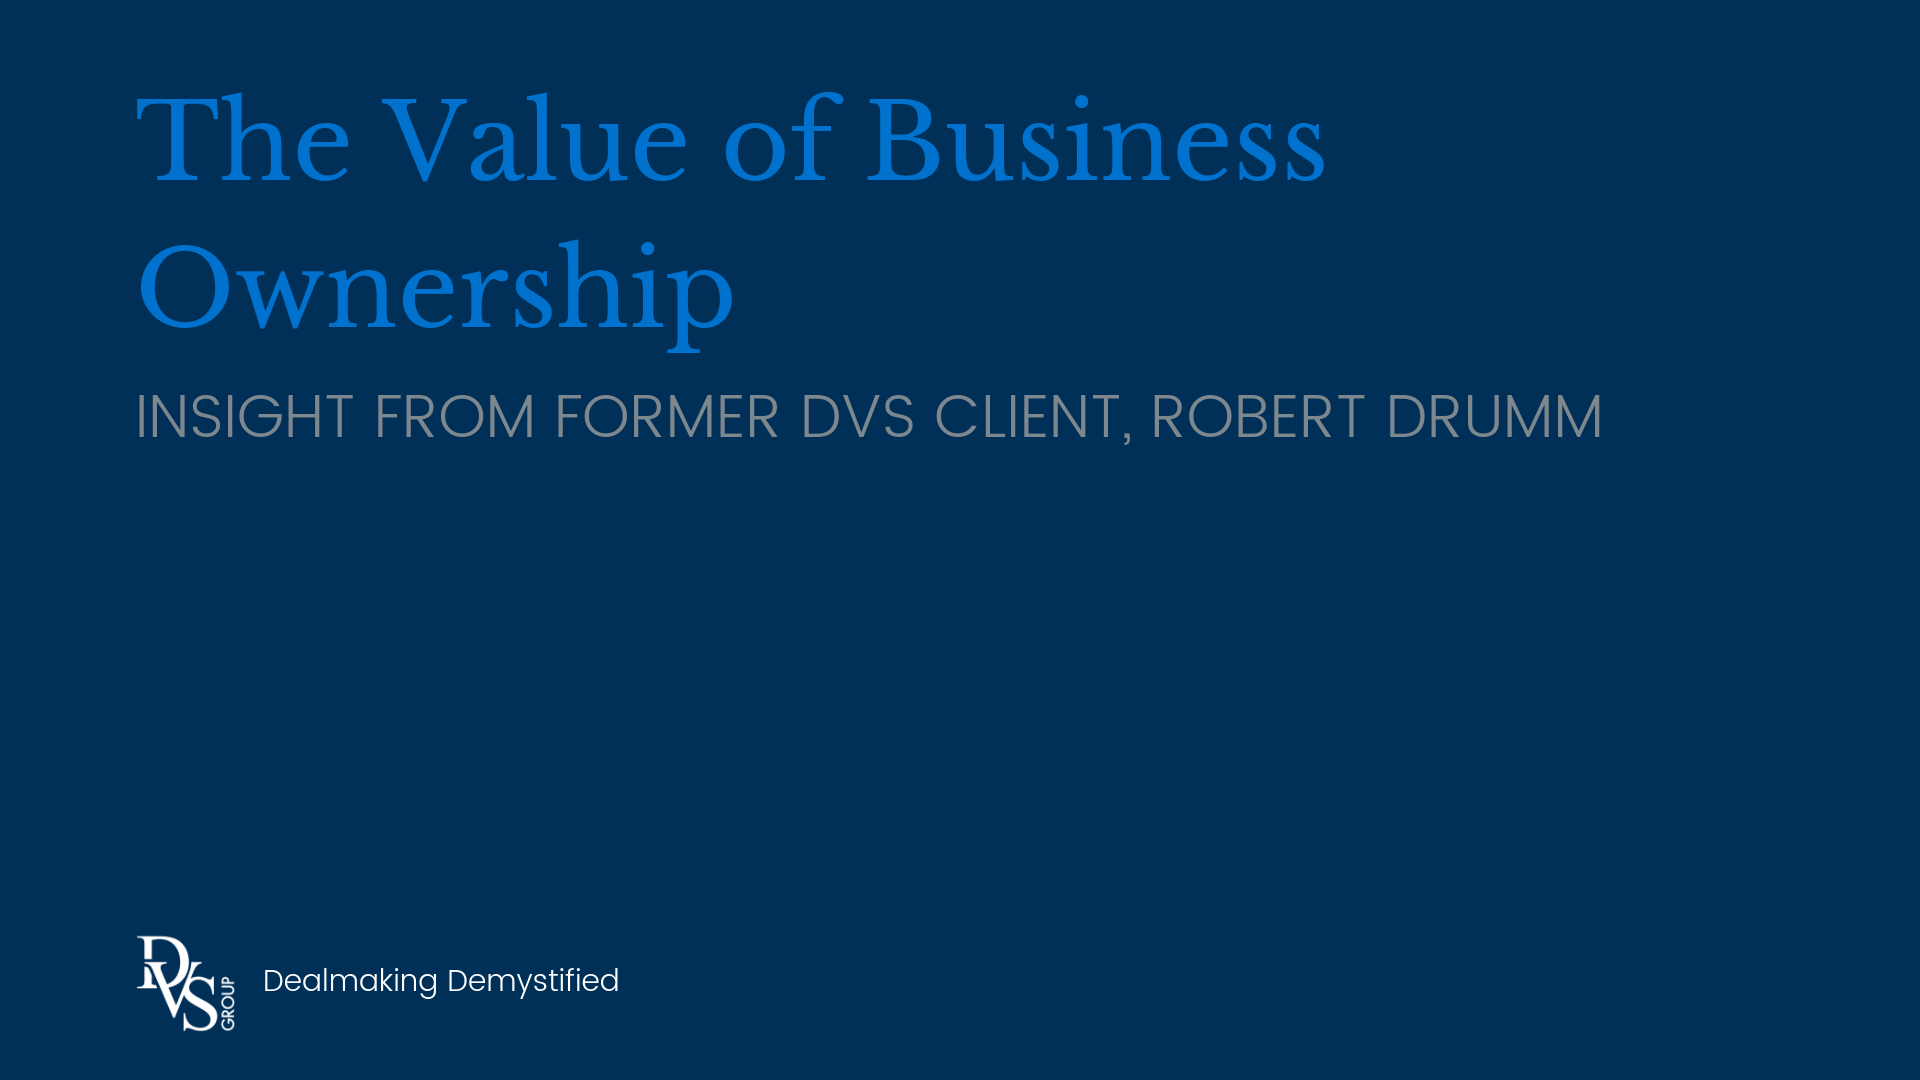 The Value of Business Ownership